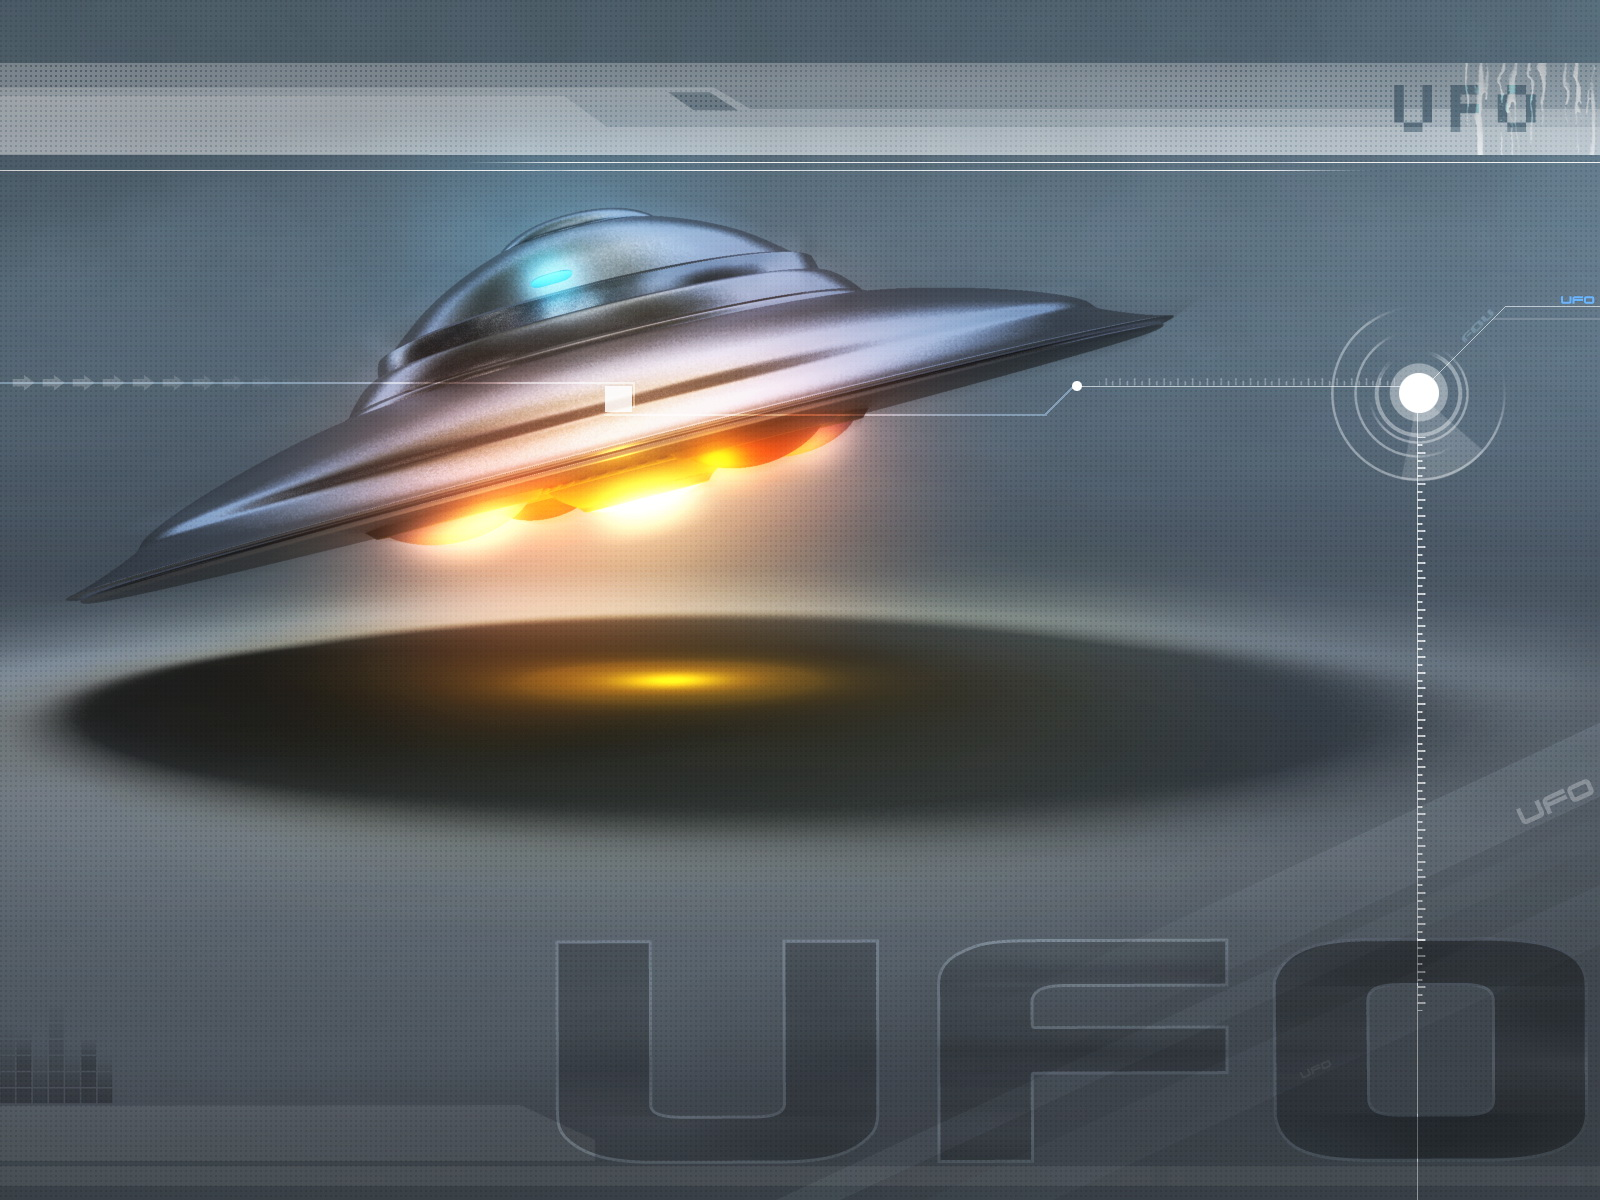 wallpaper ufo 3d graphics